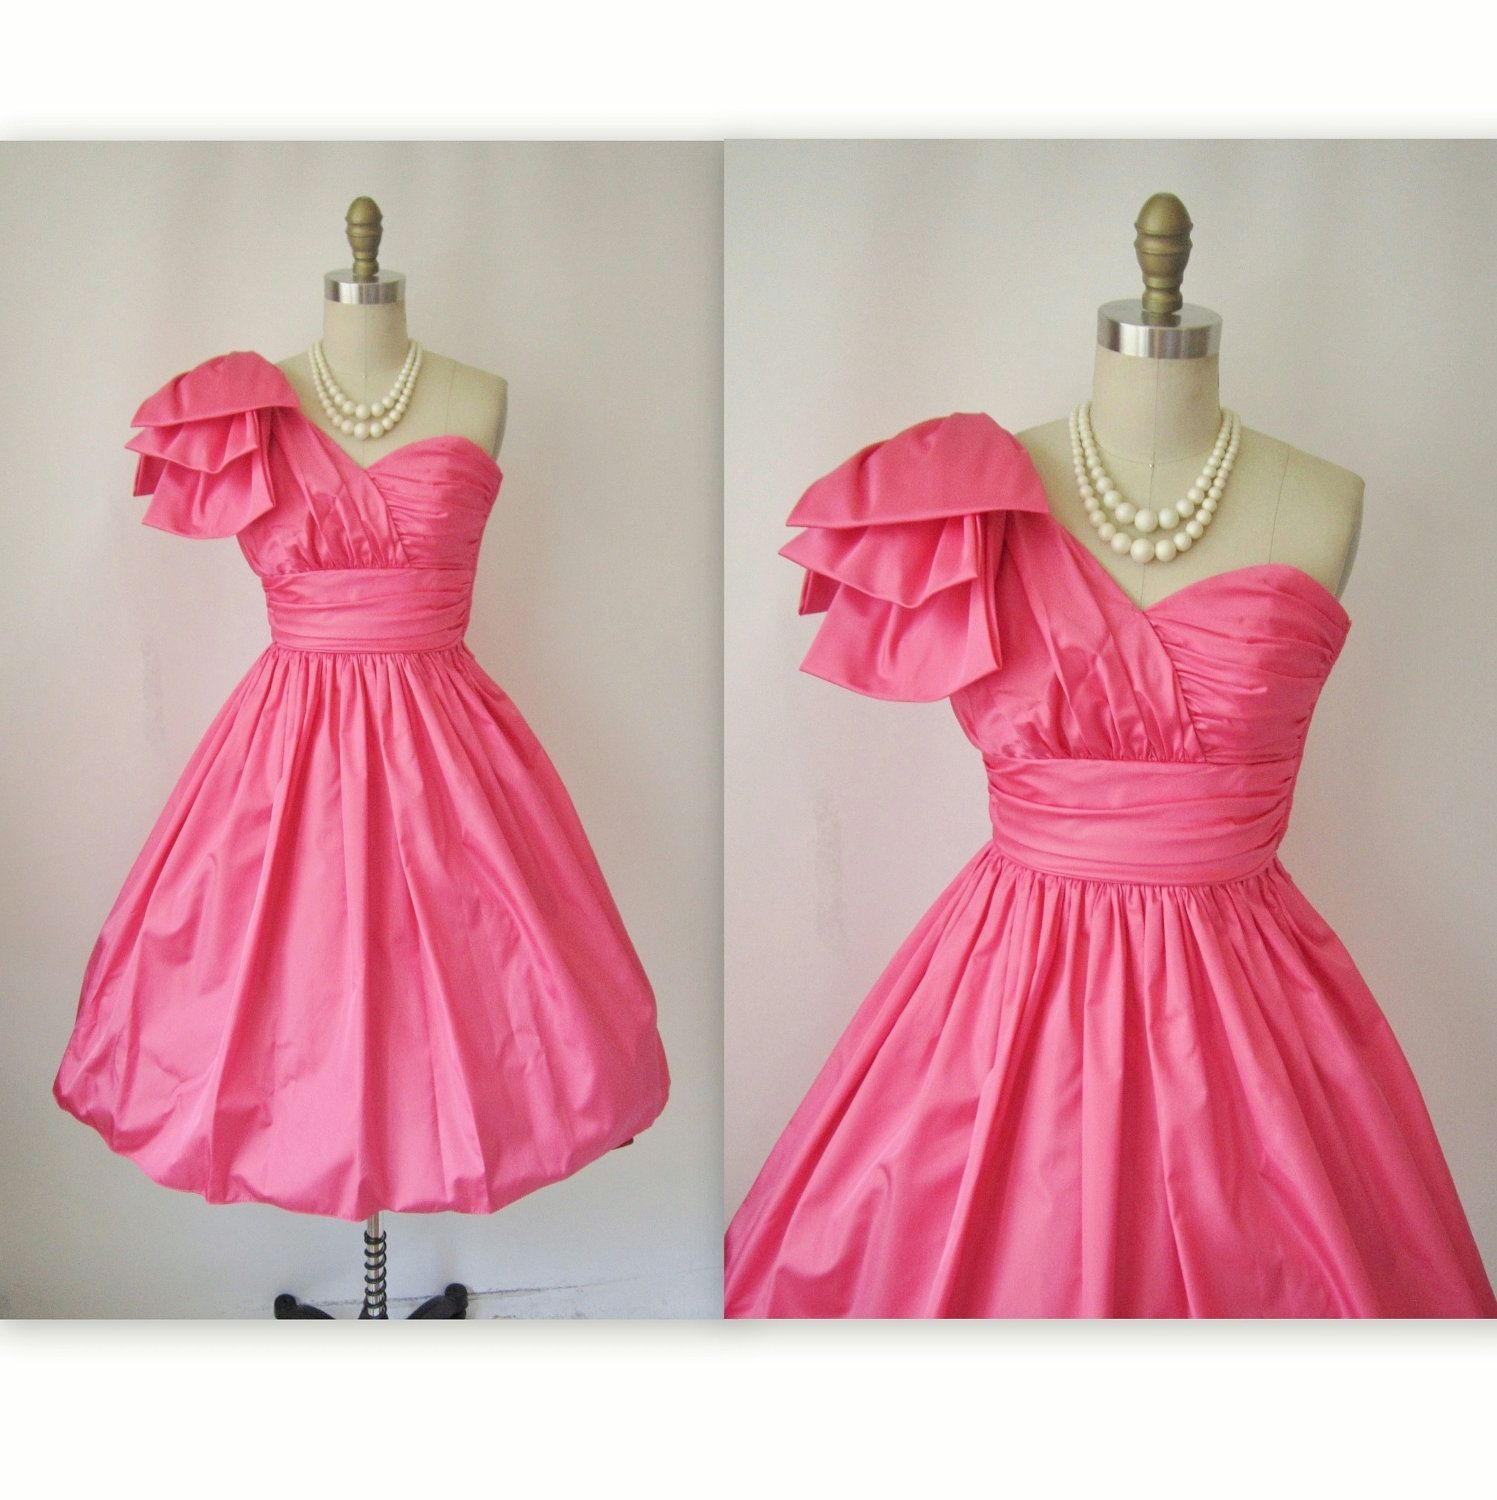 Vintage Prom Dress // 1980's One Shoulder Hot Pink Taffeta Cocktail Party Prom Dress XXS XS #dressesfromthesouthernbelleera